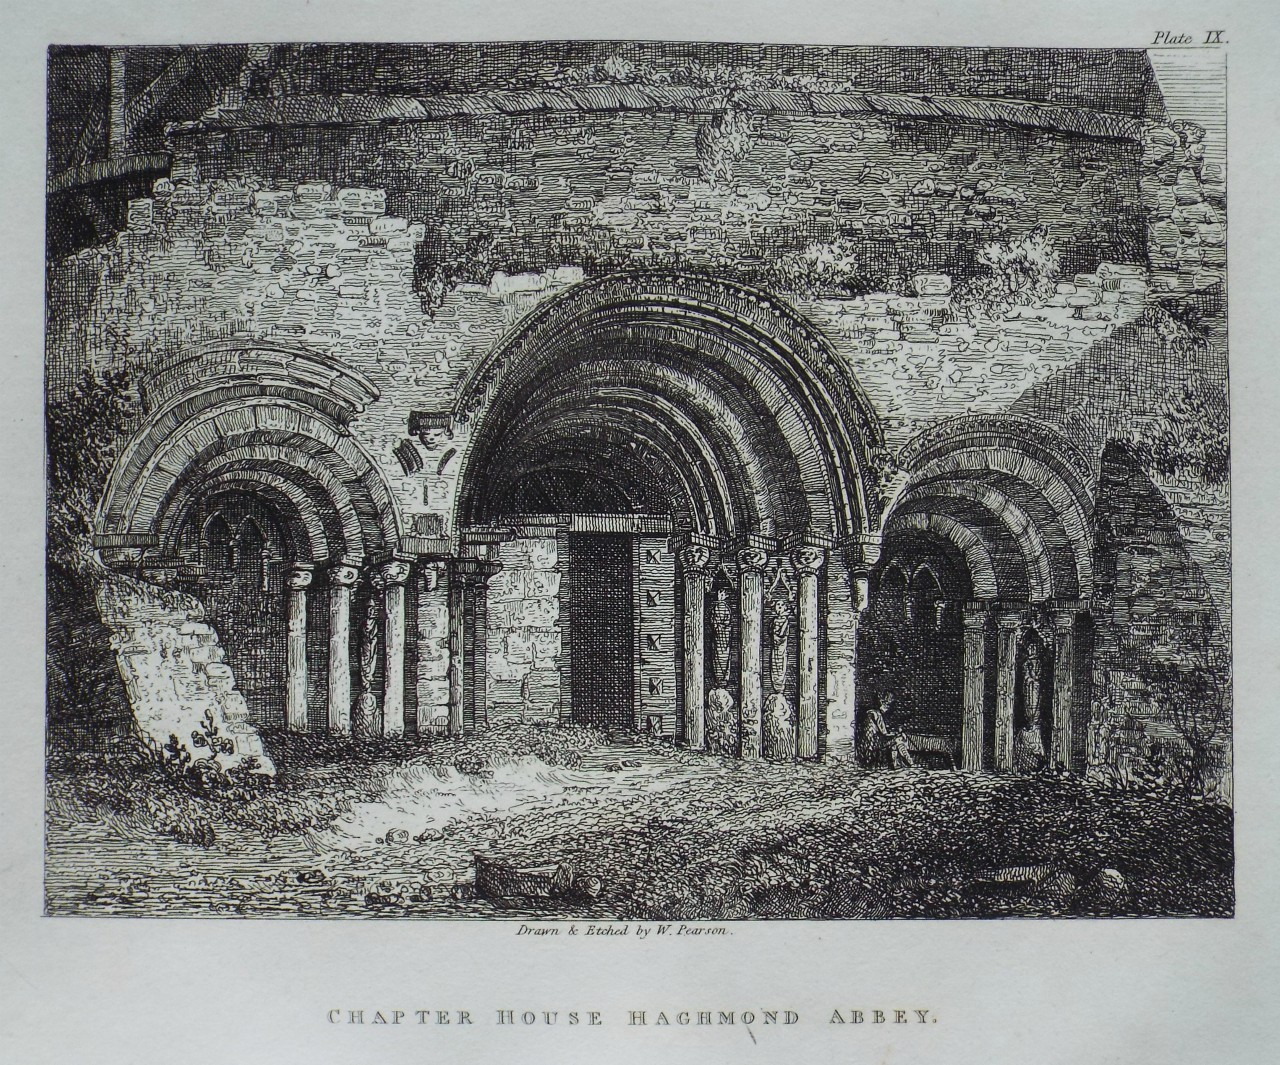 Etching - Chapter House Haghmond Abbey. - Pearson